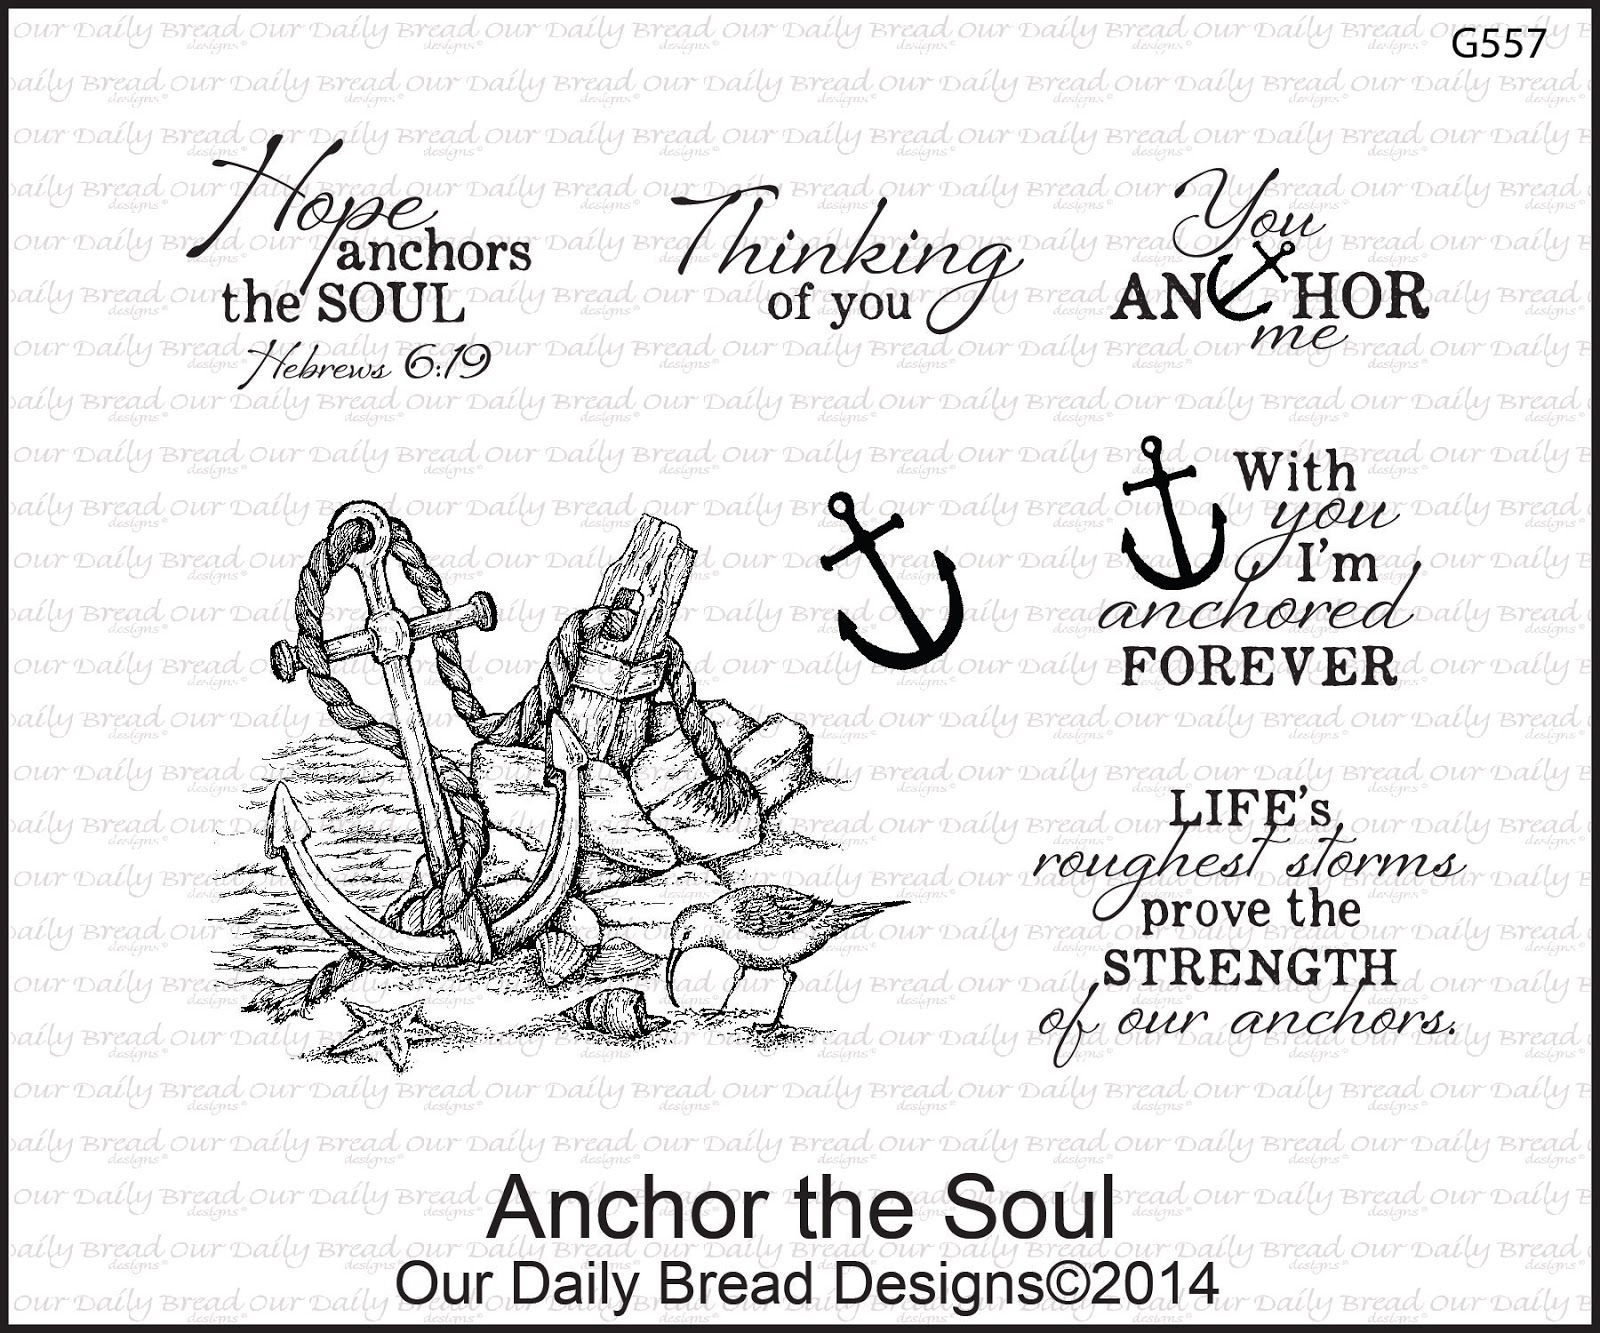 https://www.ourdailybreaddesigns.com/index.php/g557-anchor-the-soul.html